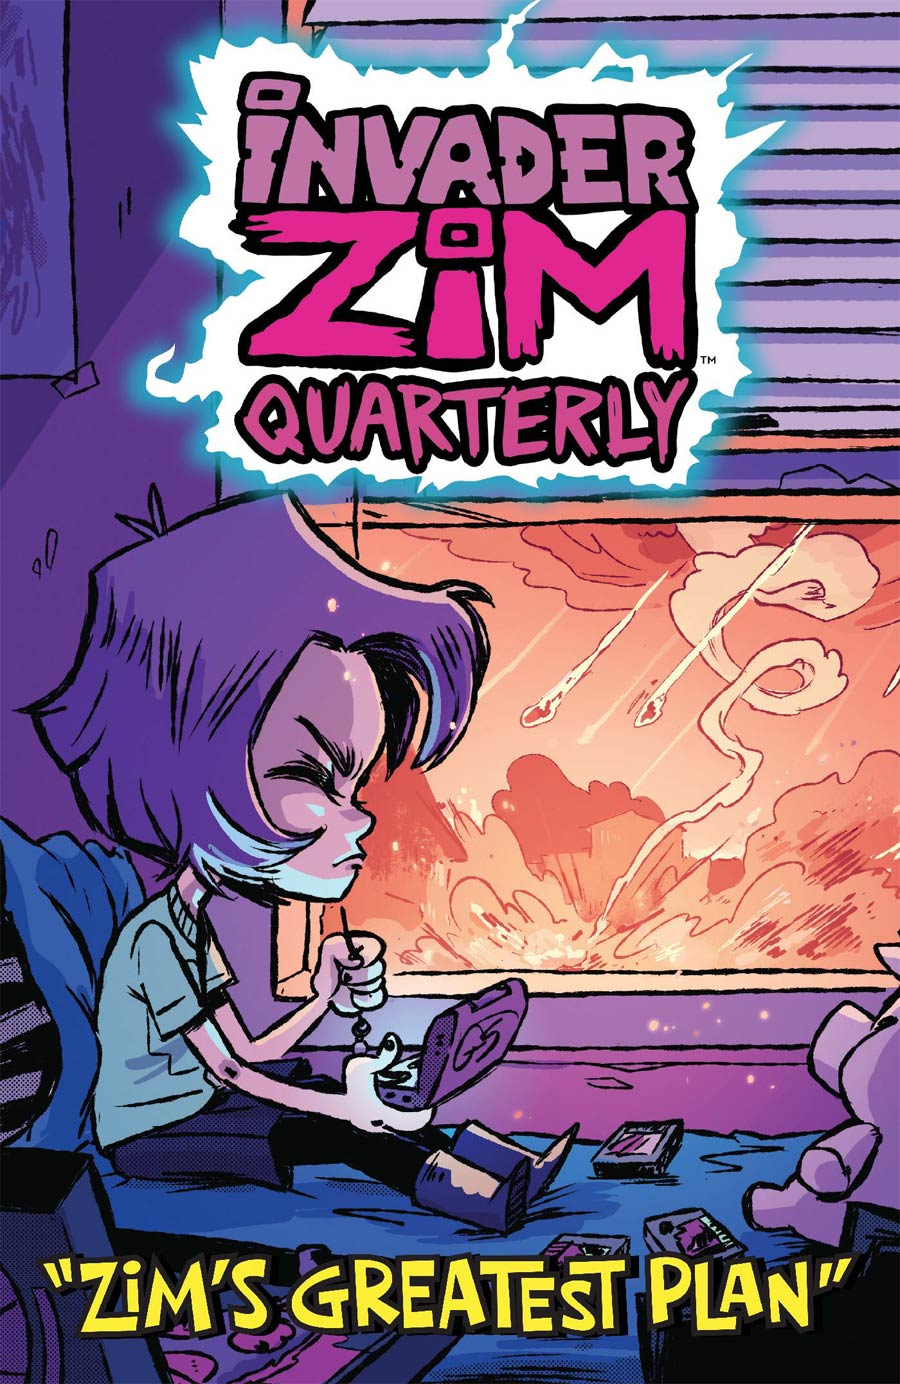 Invader Zim Quarterly #4 Zims Greatest Plan Cover B Variant CAB Cover